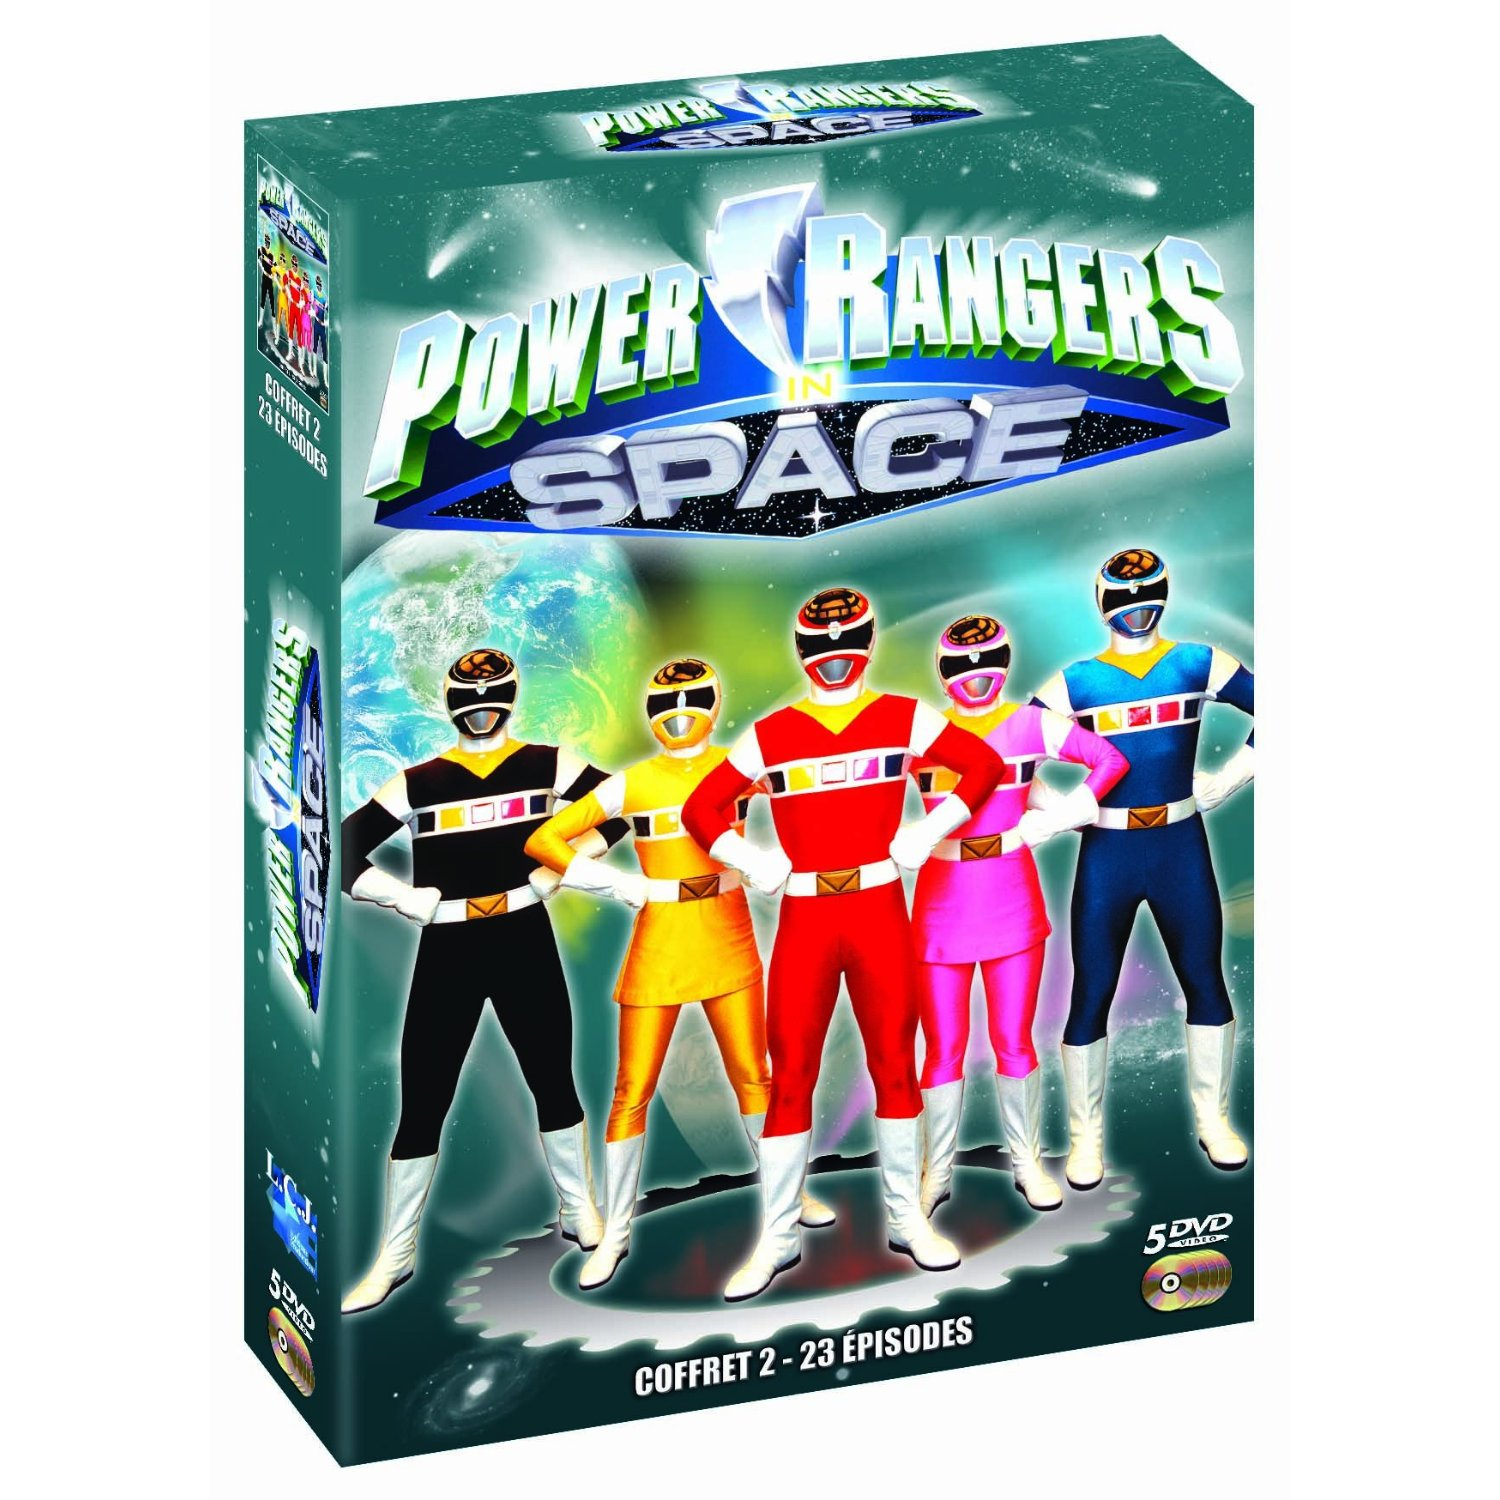 the power is on turbo zeo in space en coffret dvd. Black Bedroom Furniture Sets. Home Design Ideas